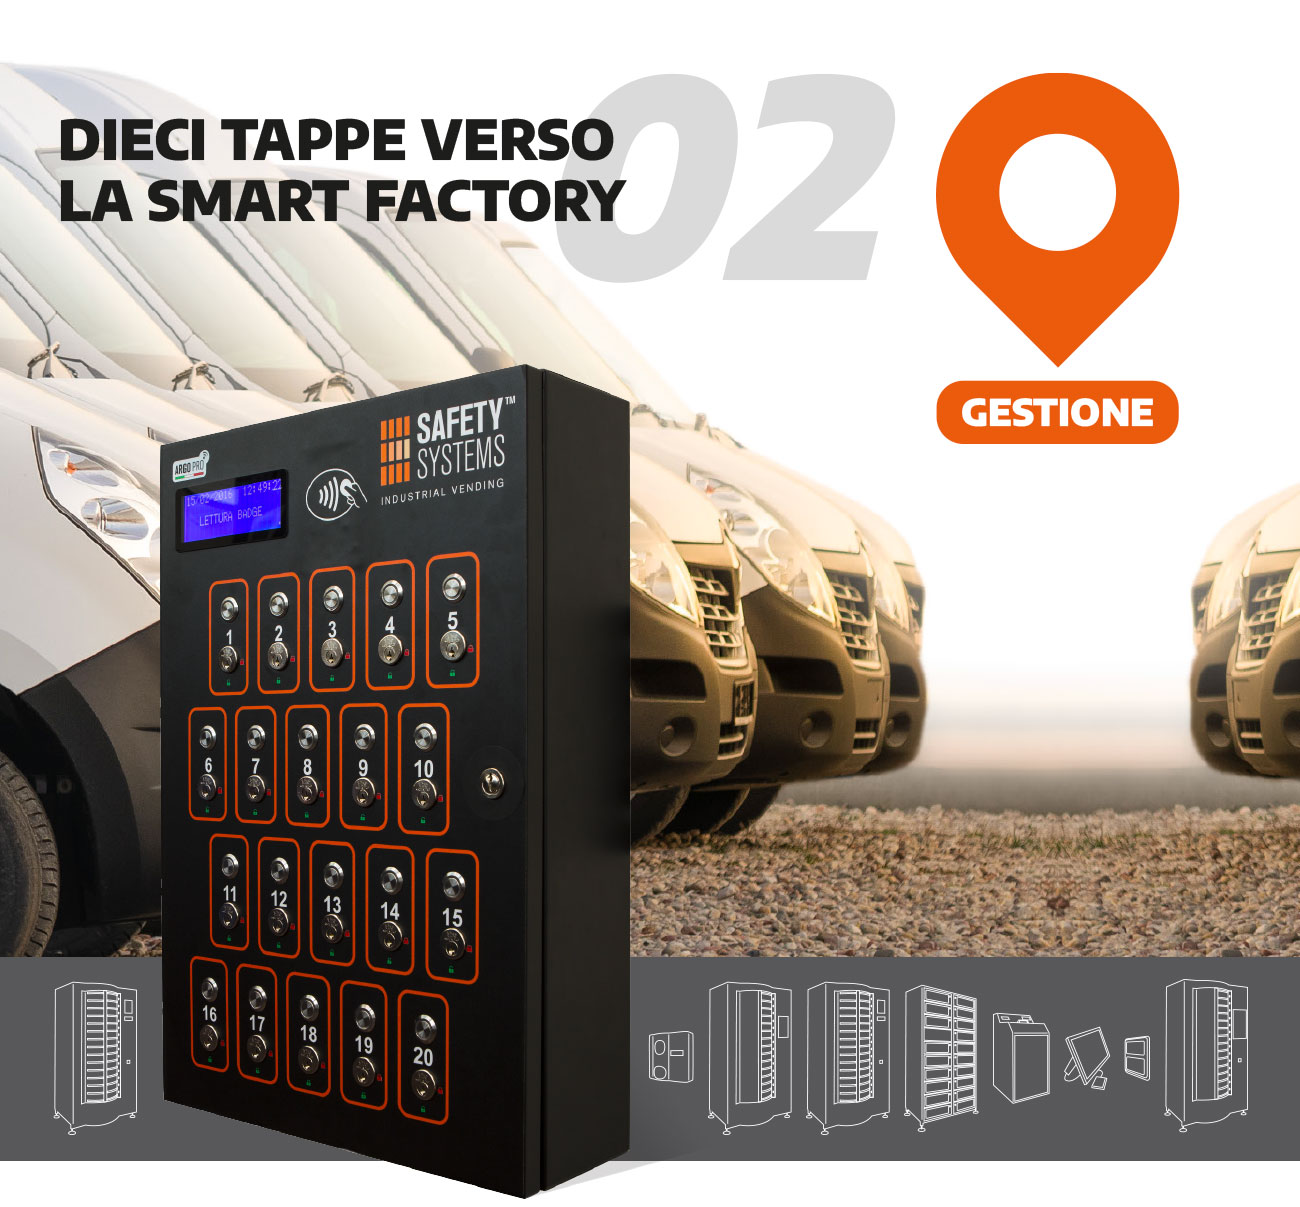 safety system Distributore Armadio automatizzato Dispostitivi DPI Distributori Automatici DPI